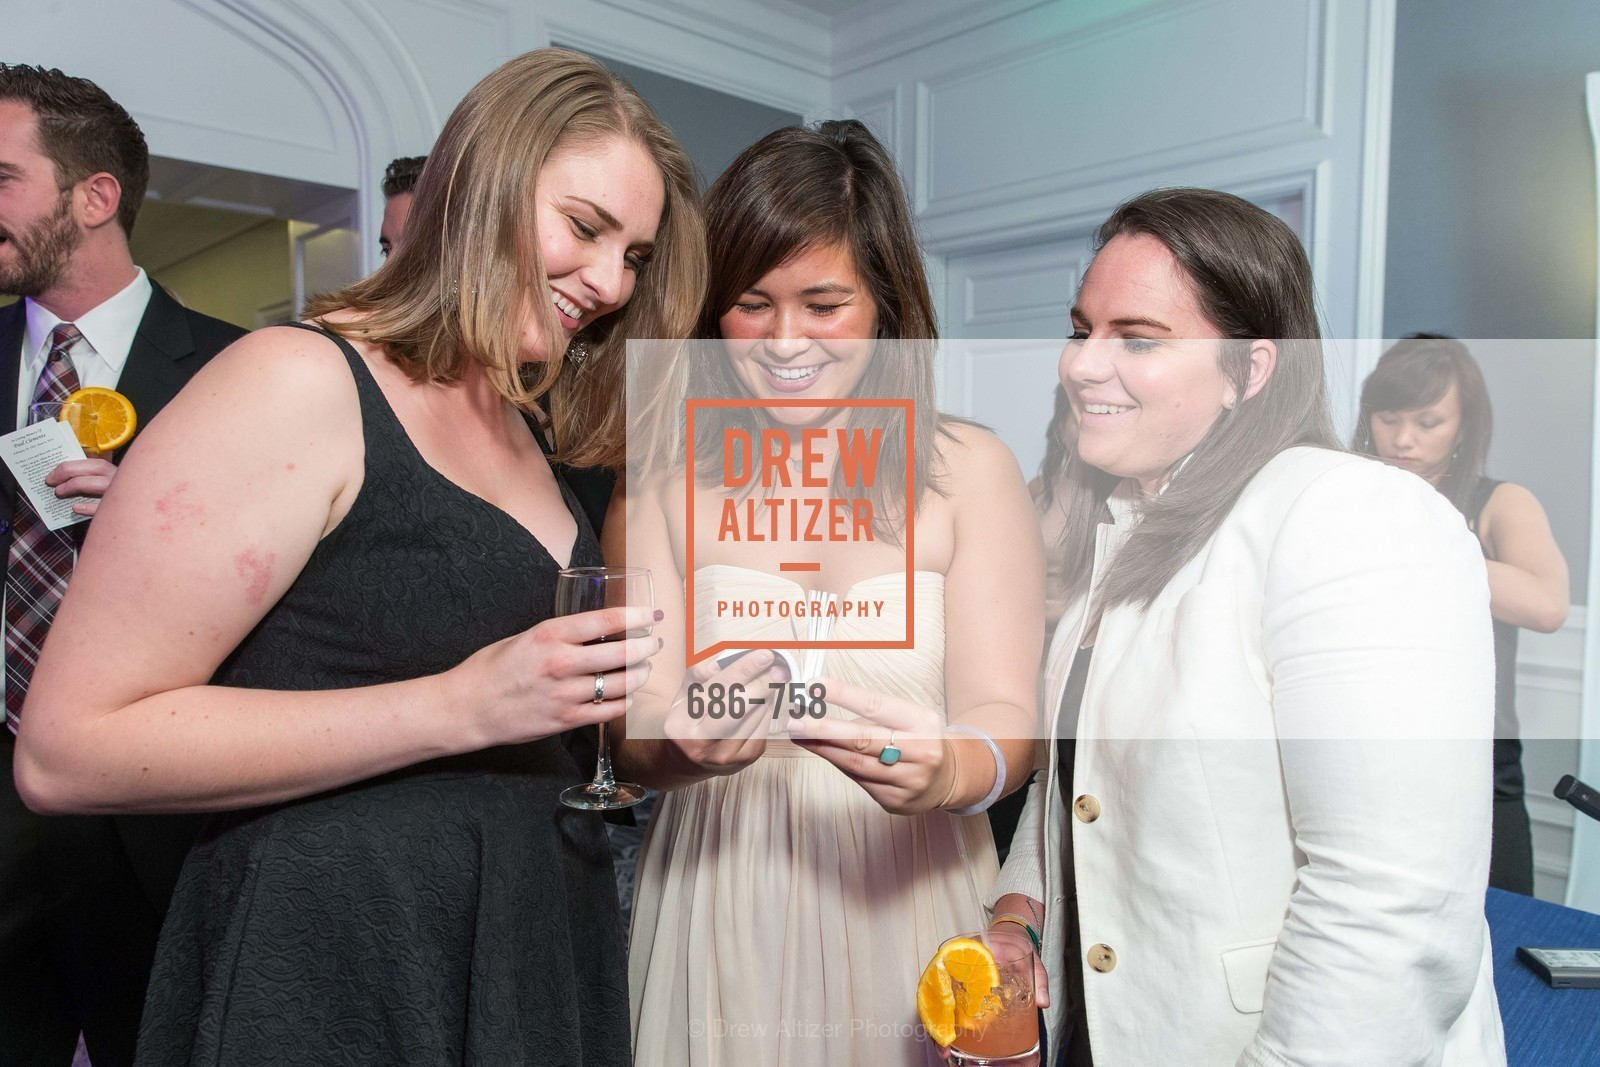 Tavia Norheim, Courtney Sandlin, Veronica Milliken, JUVENILE DIABETES RESEARCH FOUNDATION  Hope Gala, US, May 30th, 2015,Drew Altizer, Drew Altizer Photography, full-service agency, private events, San Francisco photographer, photographer california